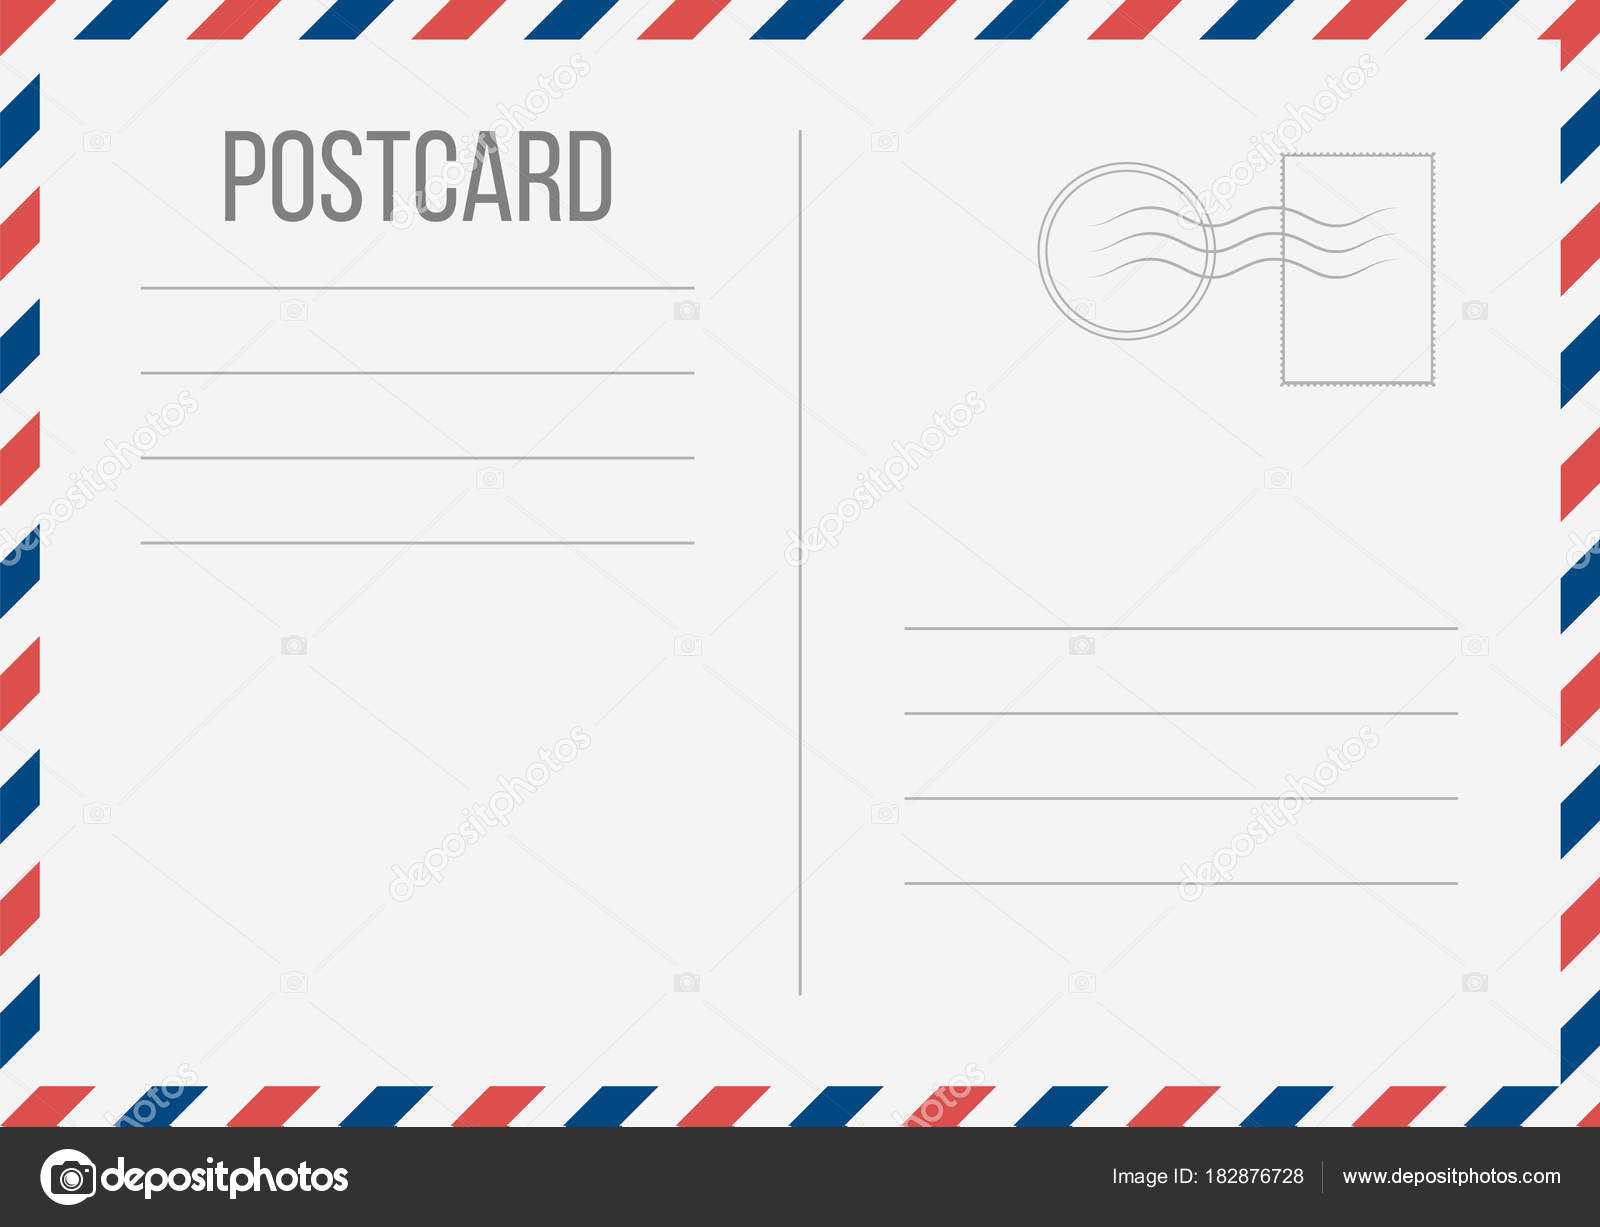 creative vector illustration of postcard isolated on transparent